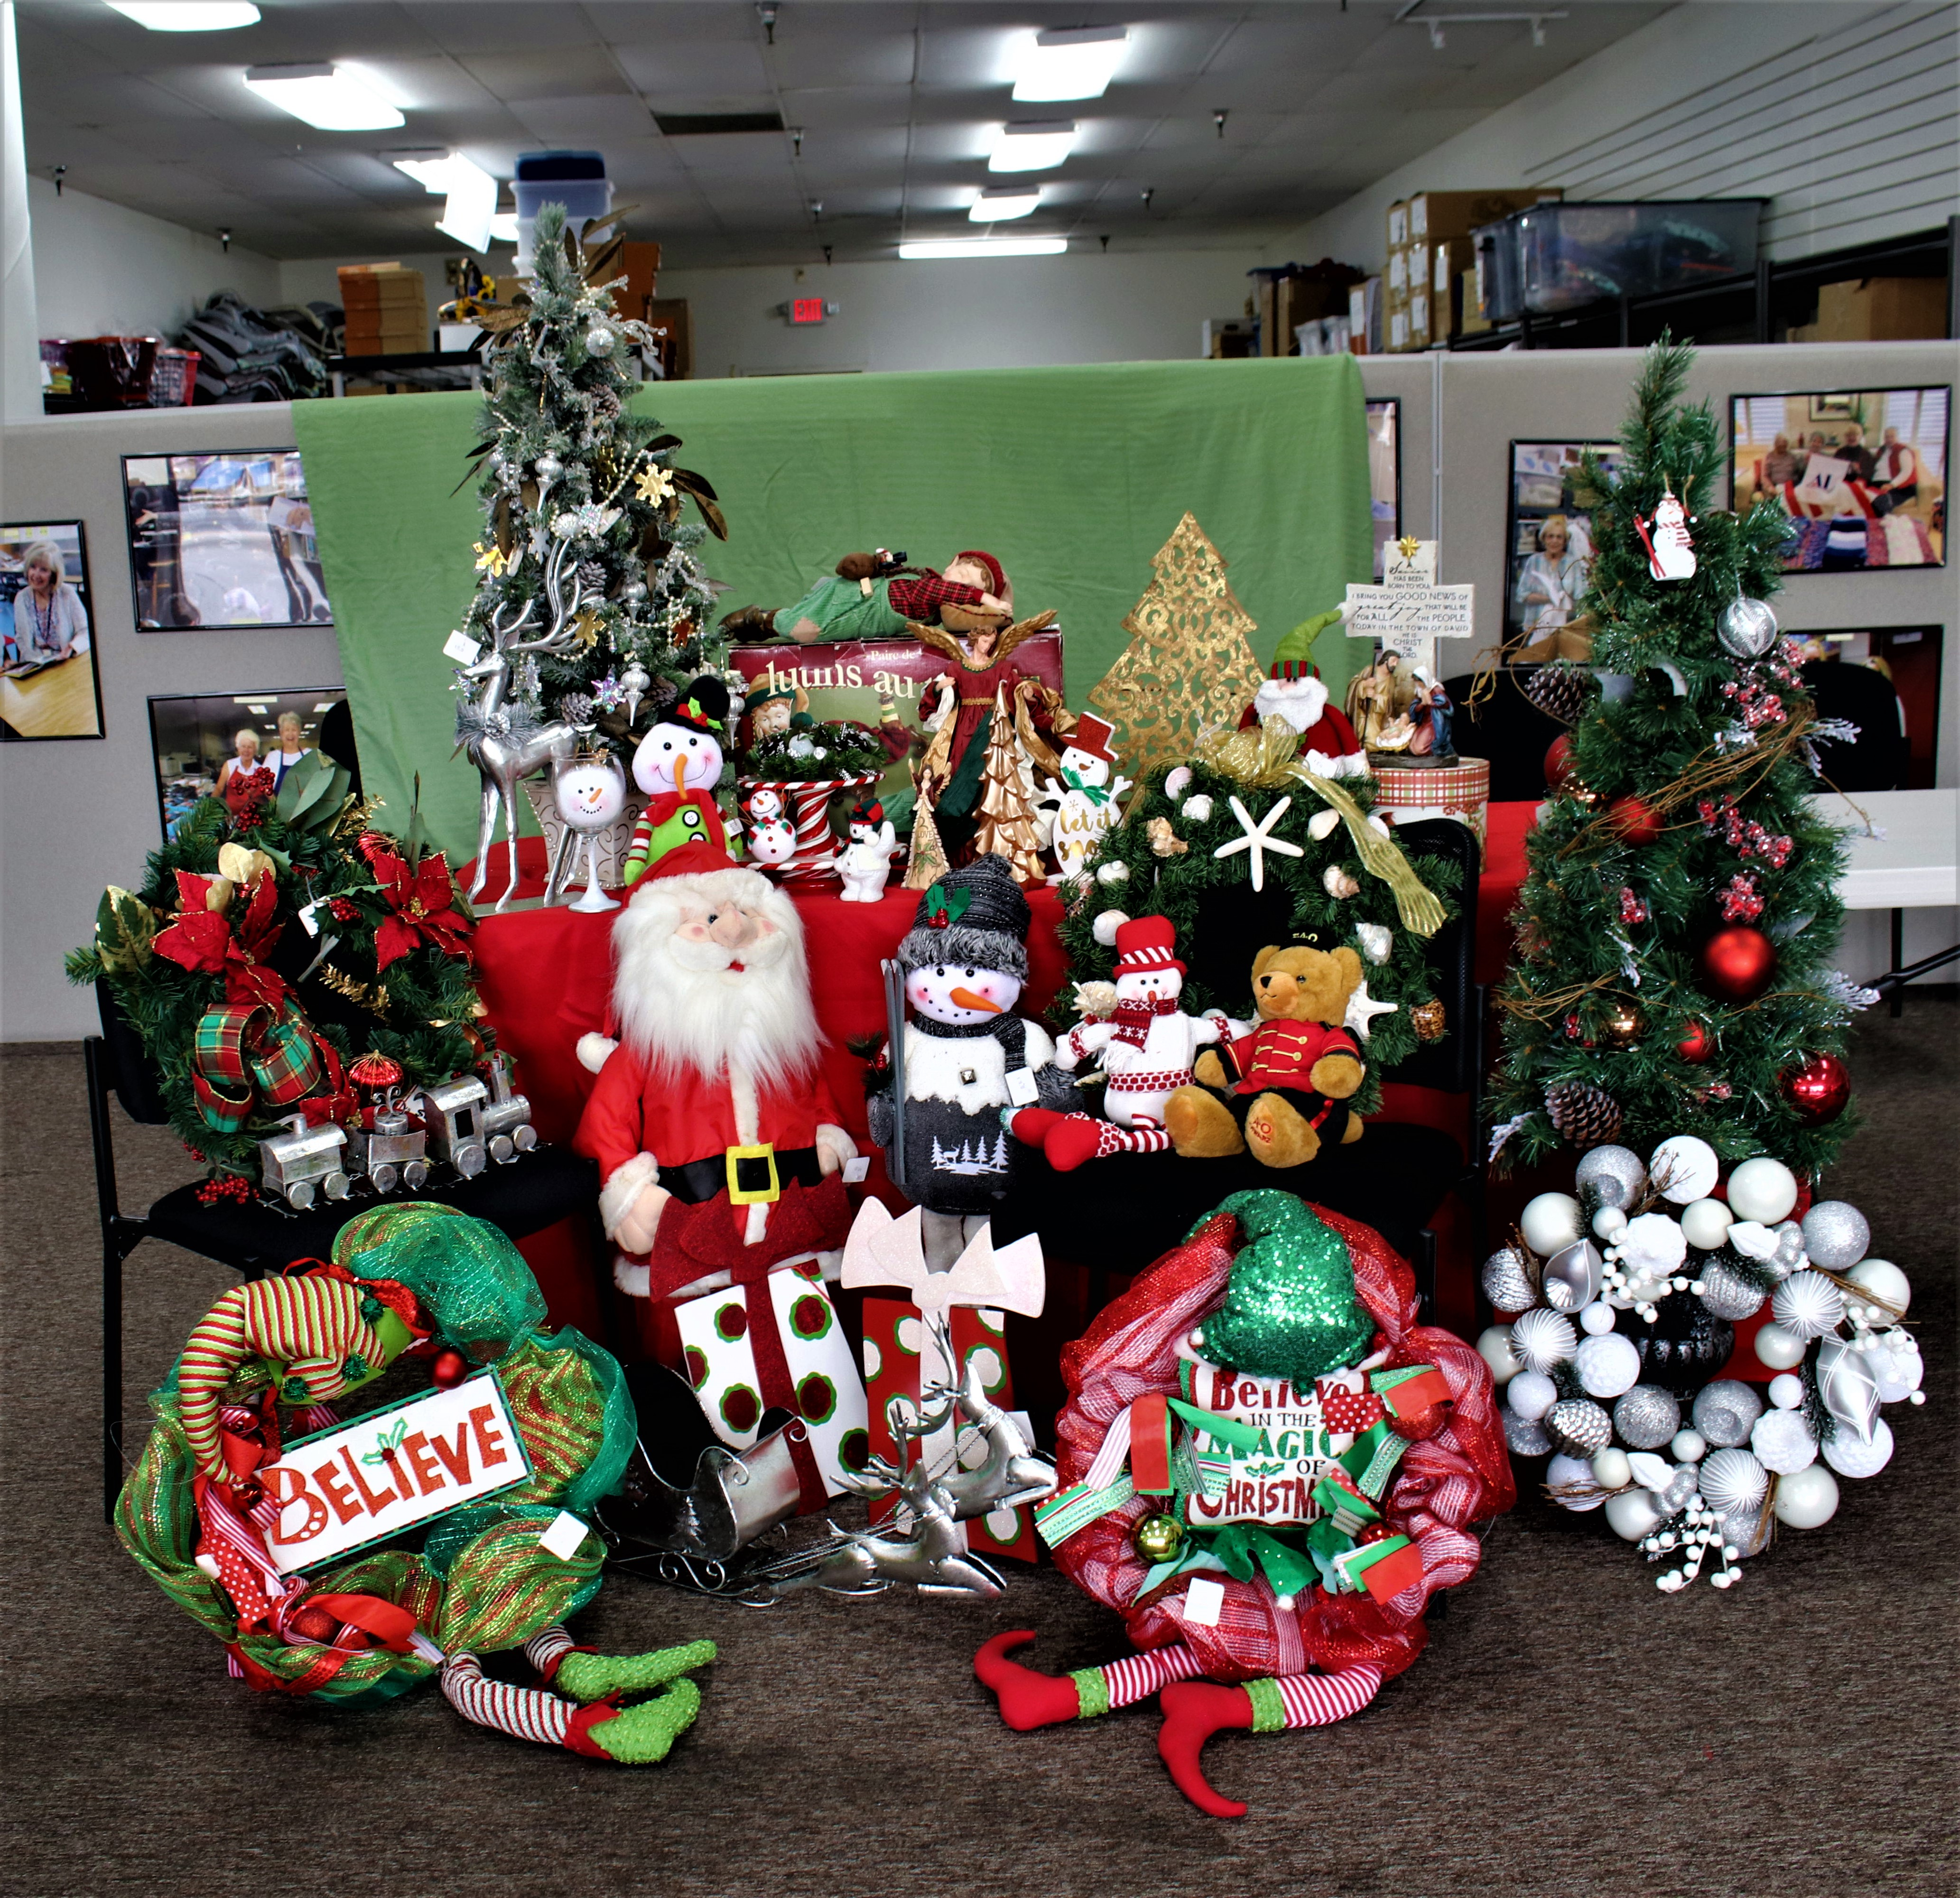 Christmas in July Sale, All Items 1/2 Price Week of 7/19-24